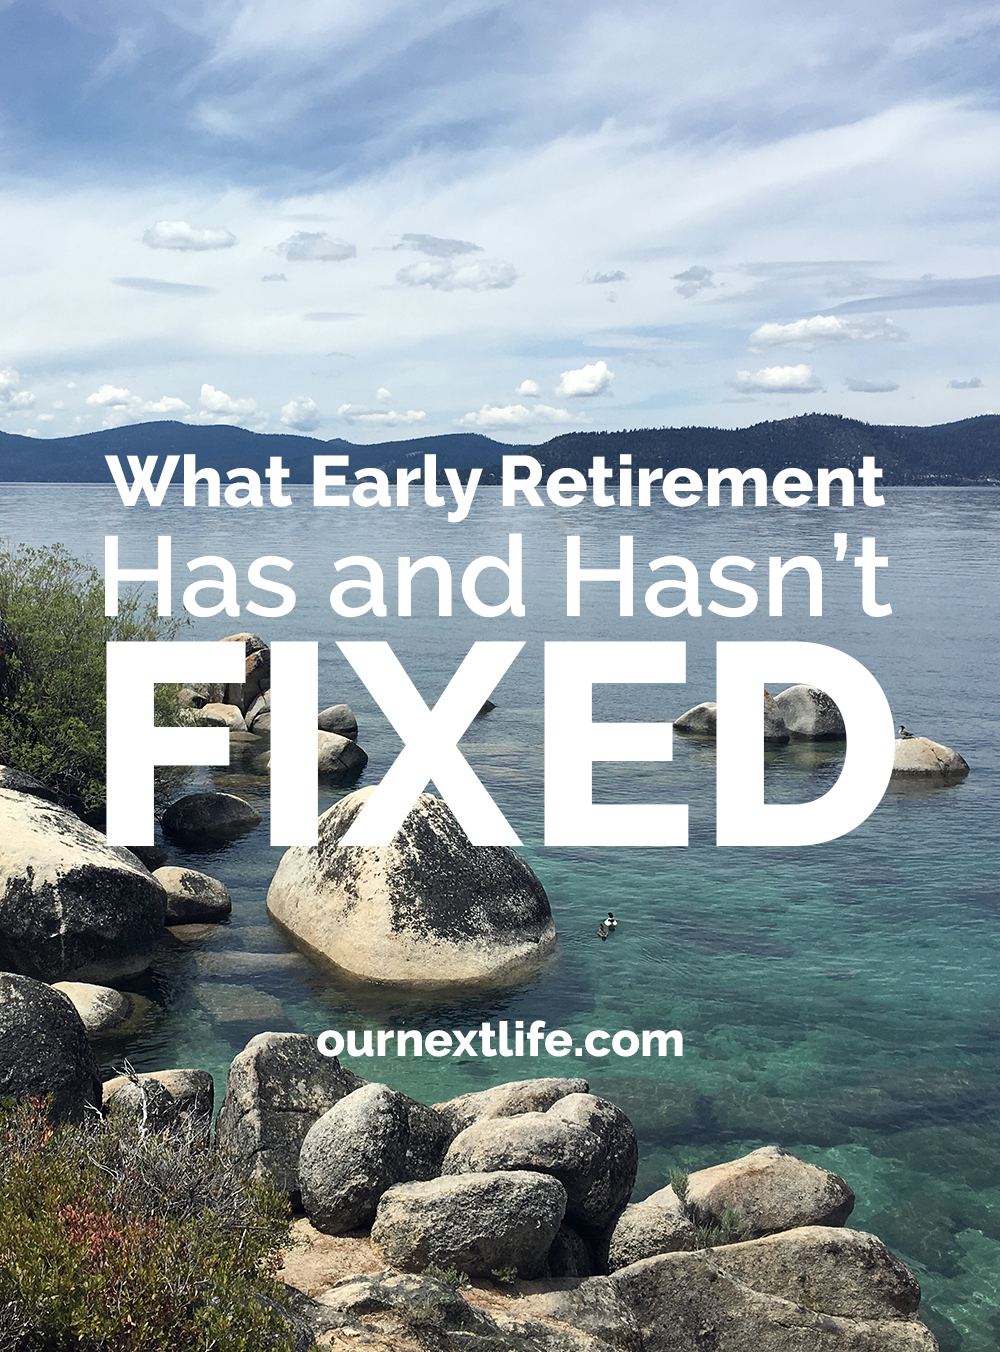 What Early Retirement Has and Hasn't Fixed -- OurNextLife.com // Financial independence, retire early, FIRE movement